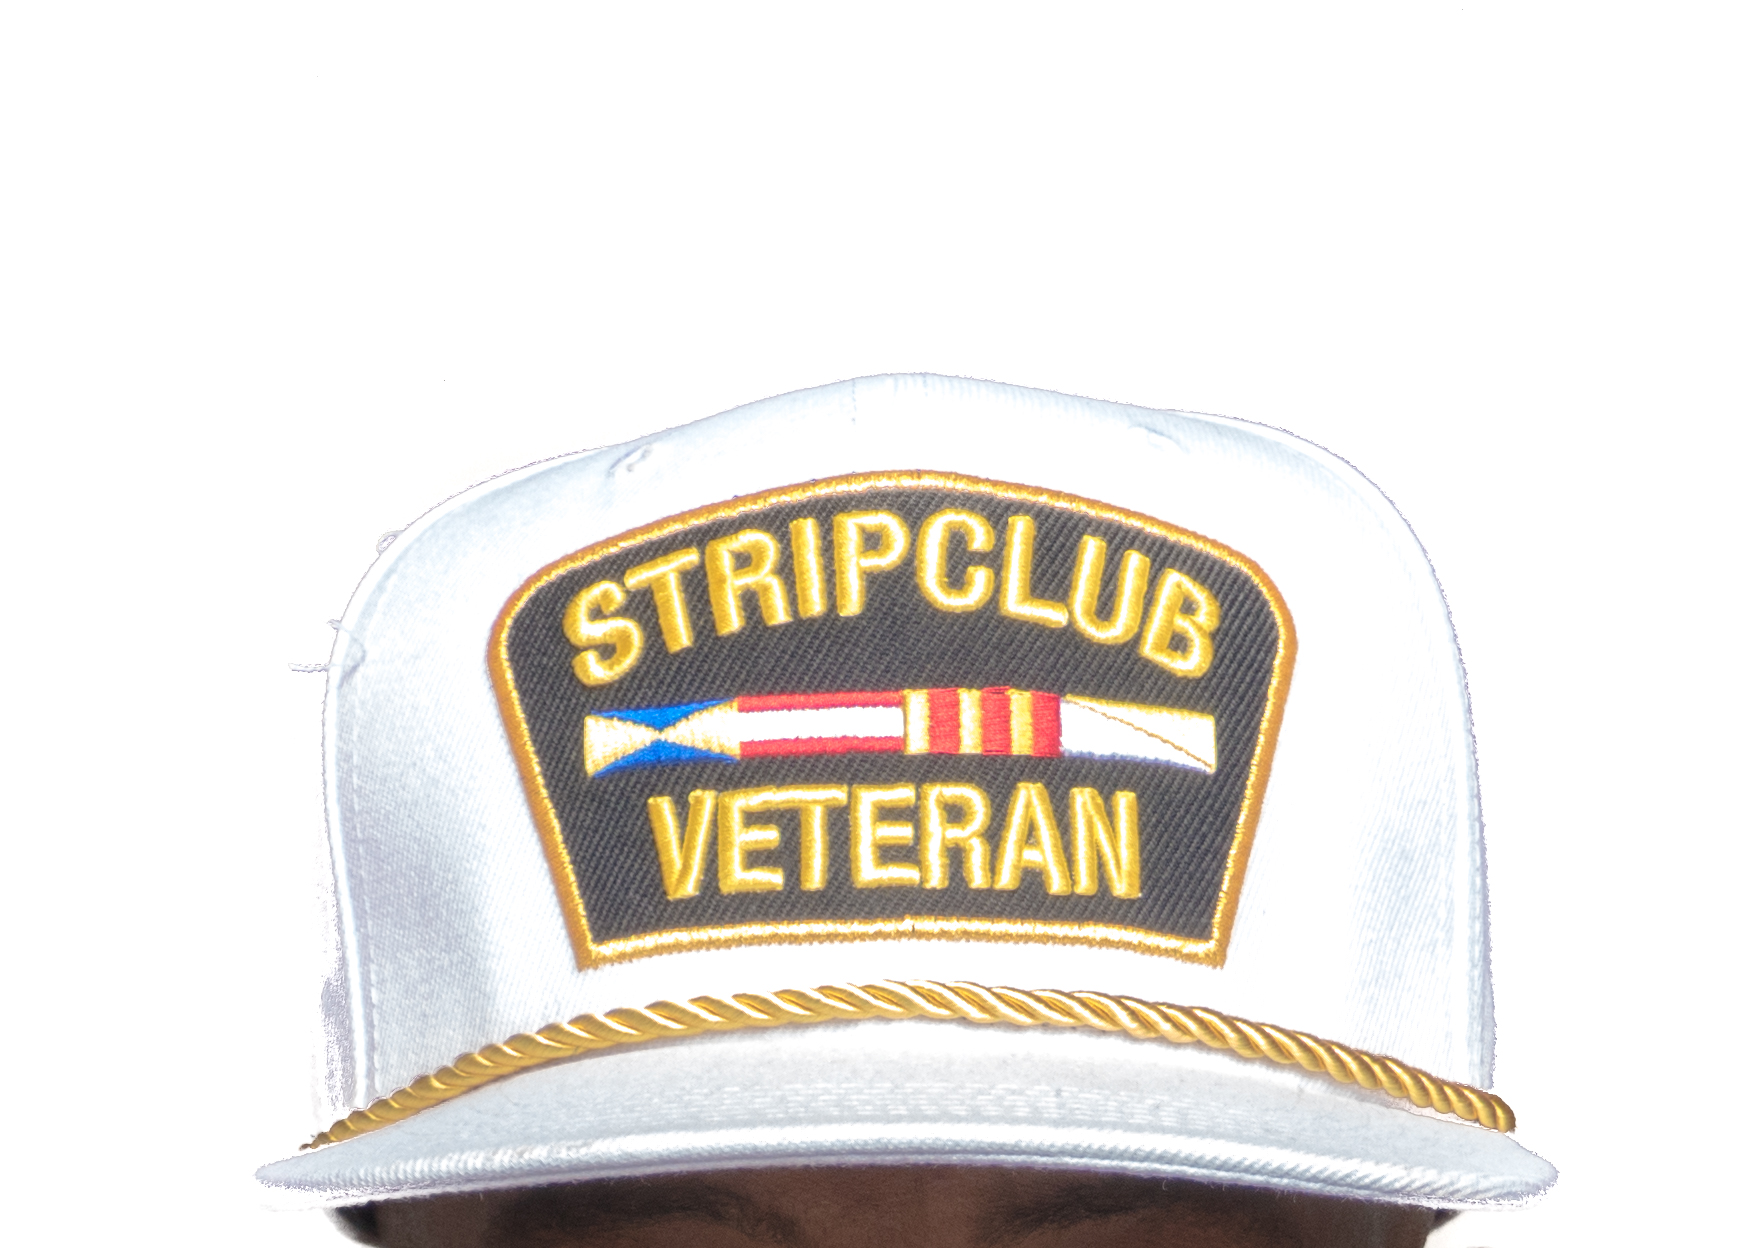 strip club vets male models-1560155-2.jpg